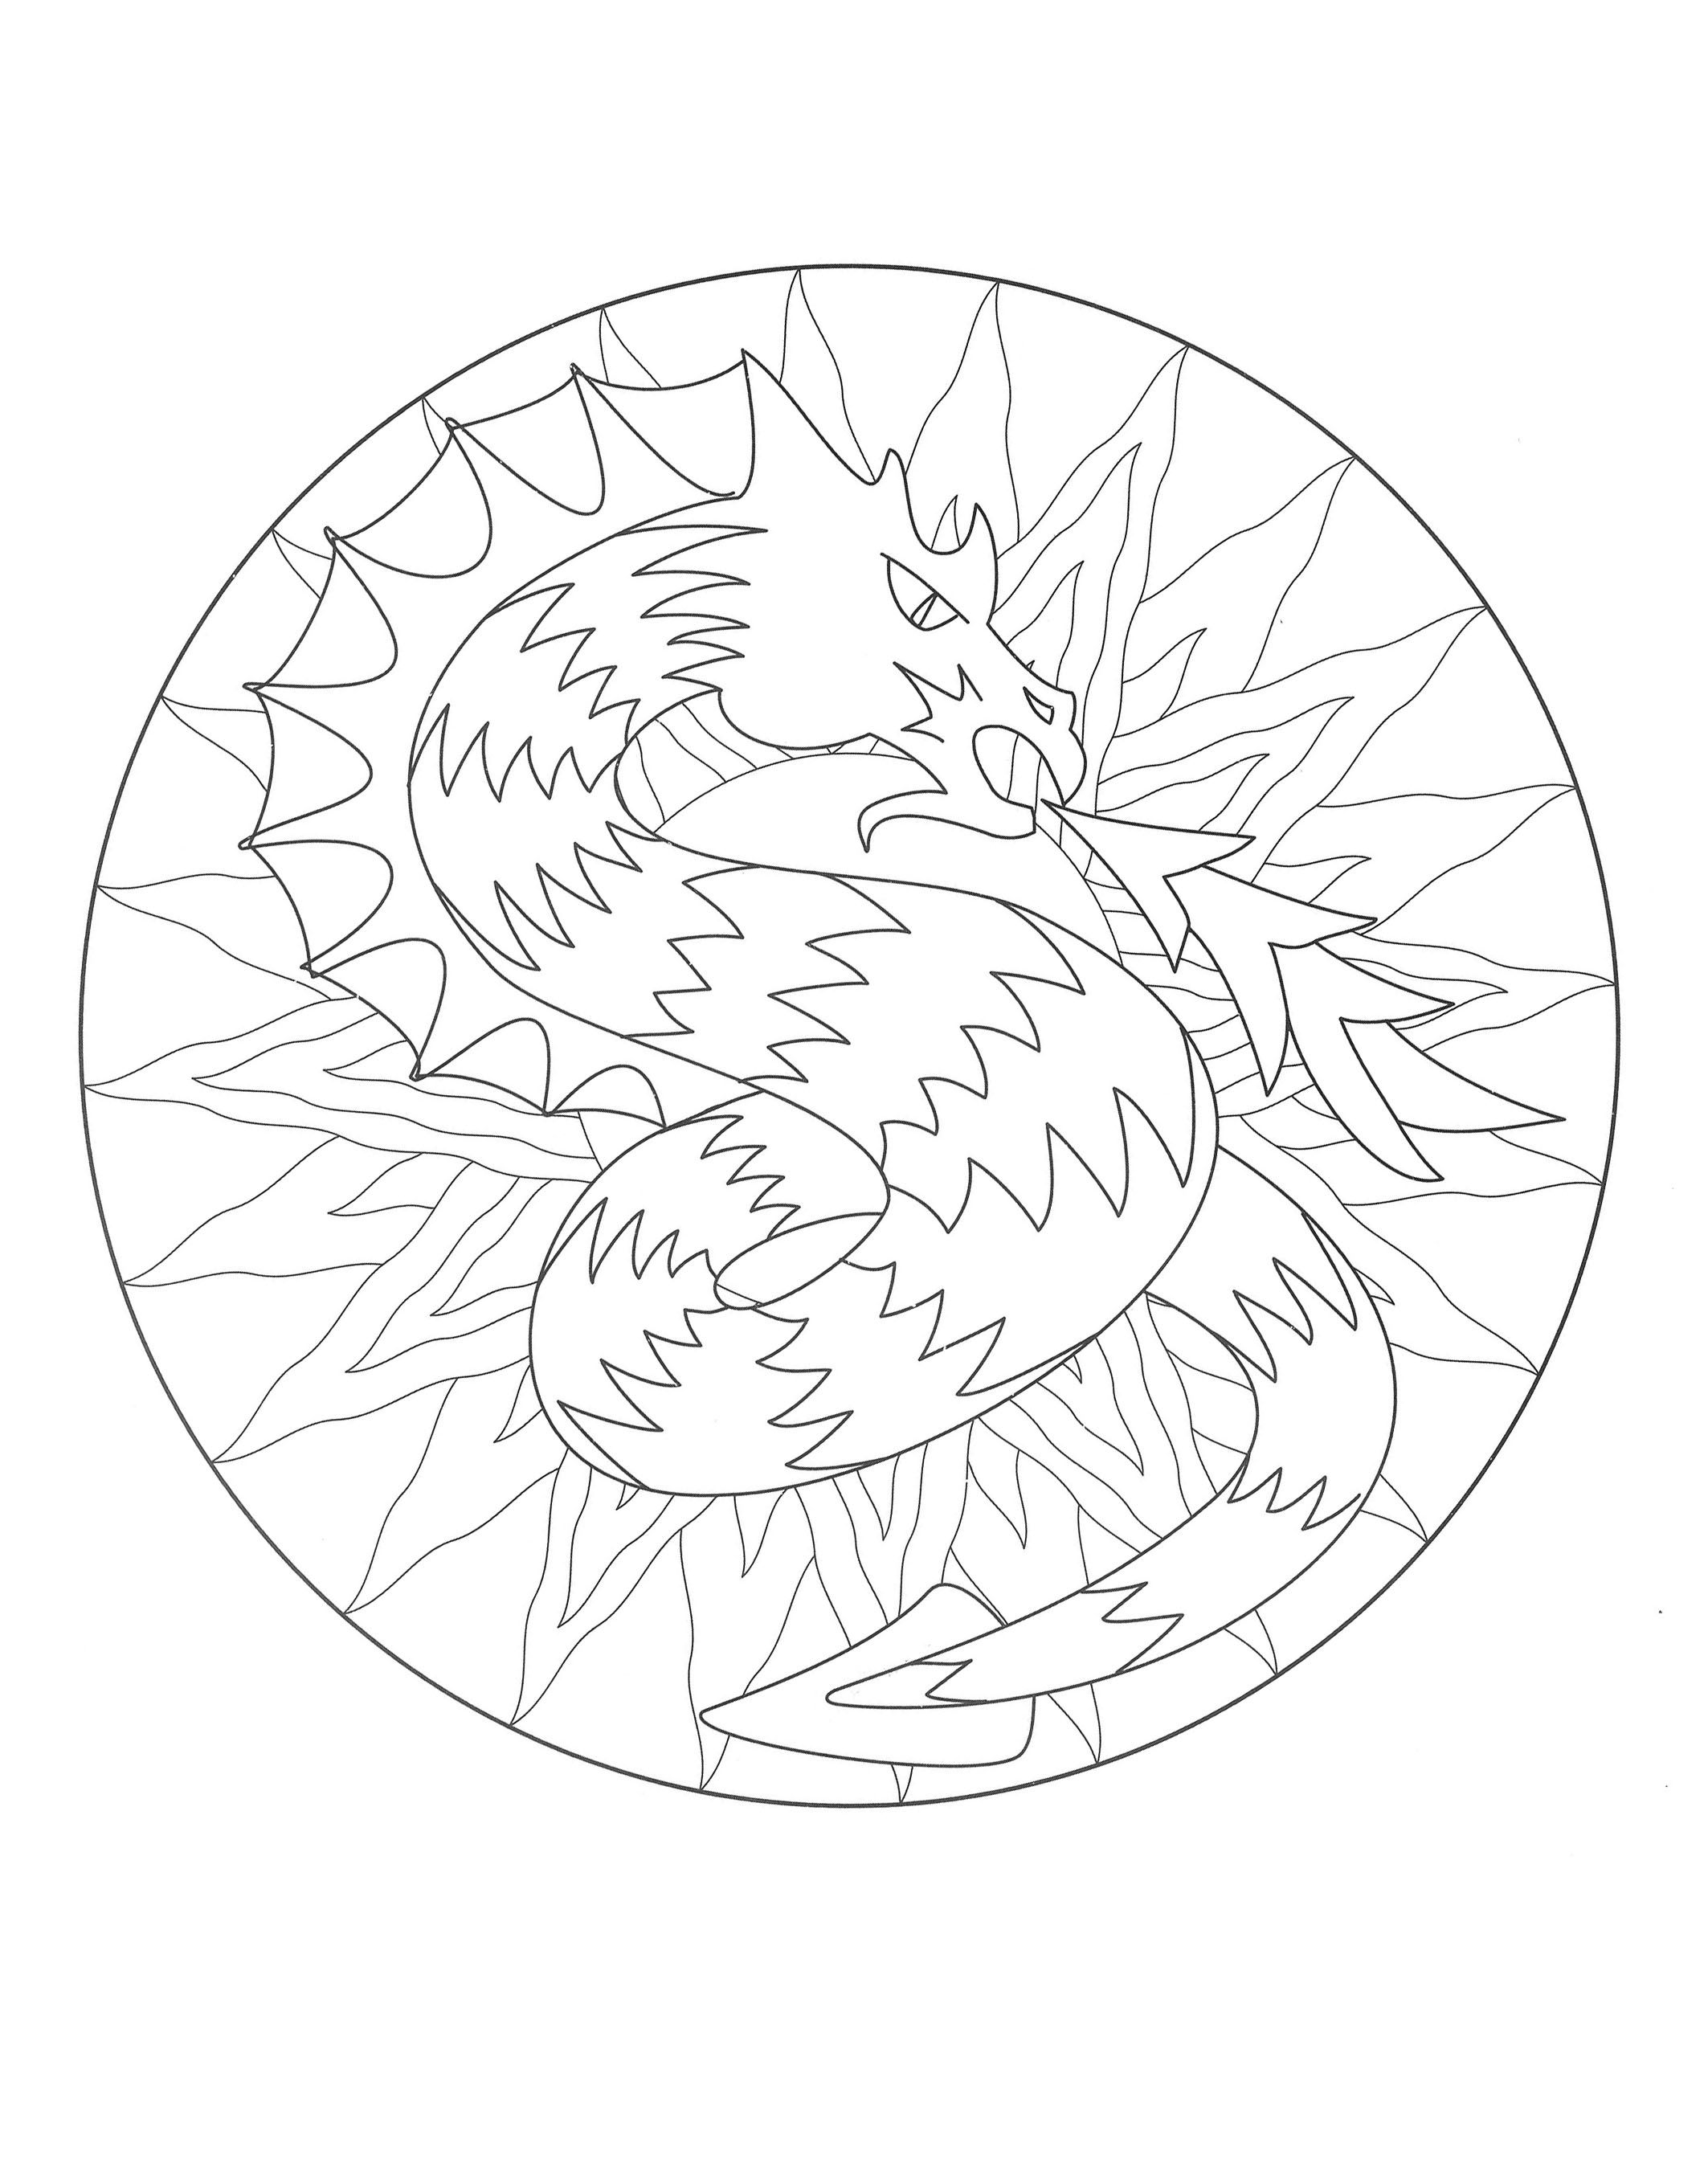 Mandala coloring pages free download - Free Mandala Coloring Page Representing A Dragon To Download On Www Coloring